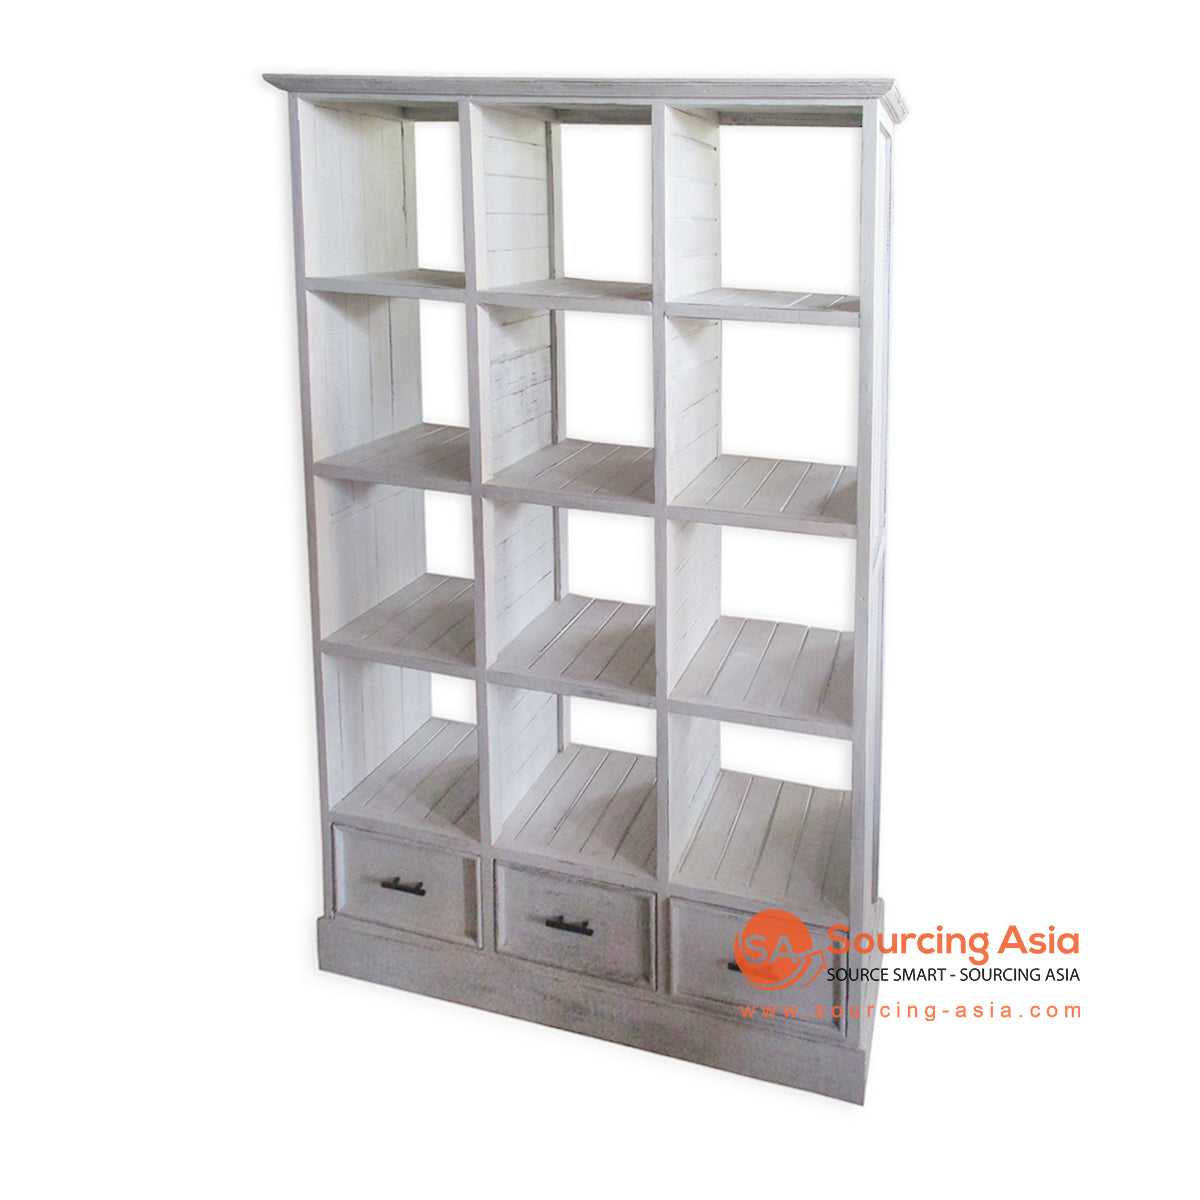 THE149WW WOODEN BOOK RACK WITH 3 DRAWERS